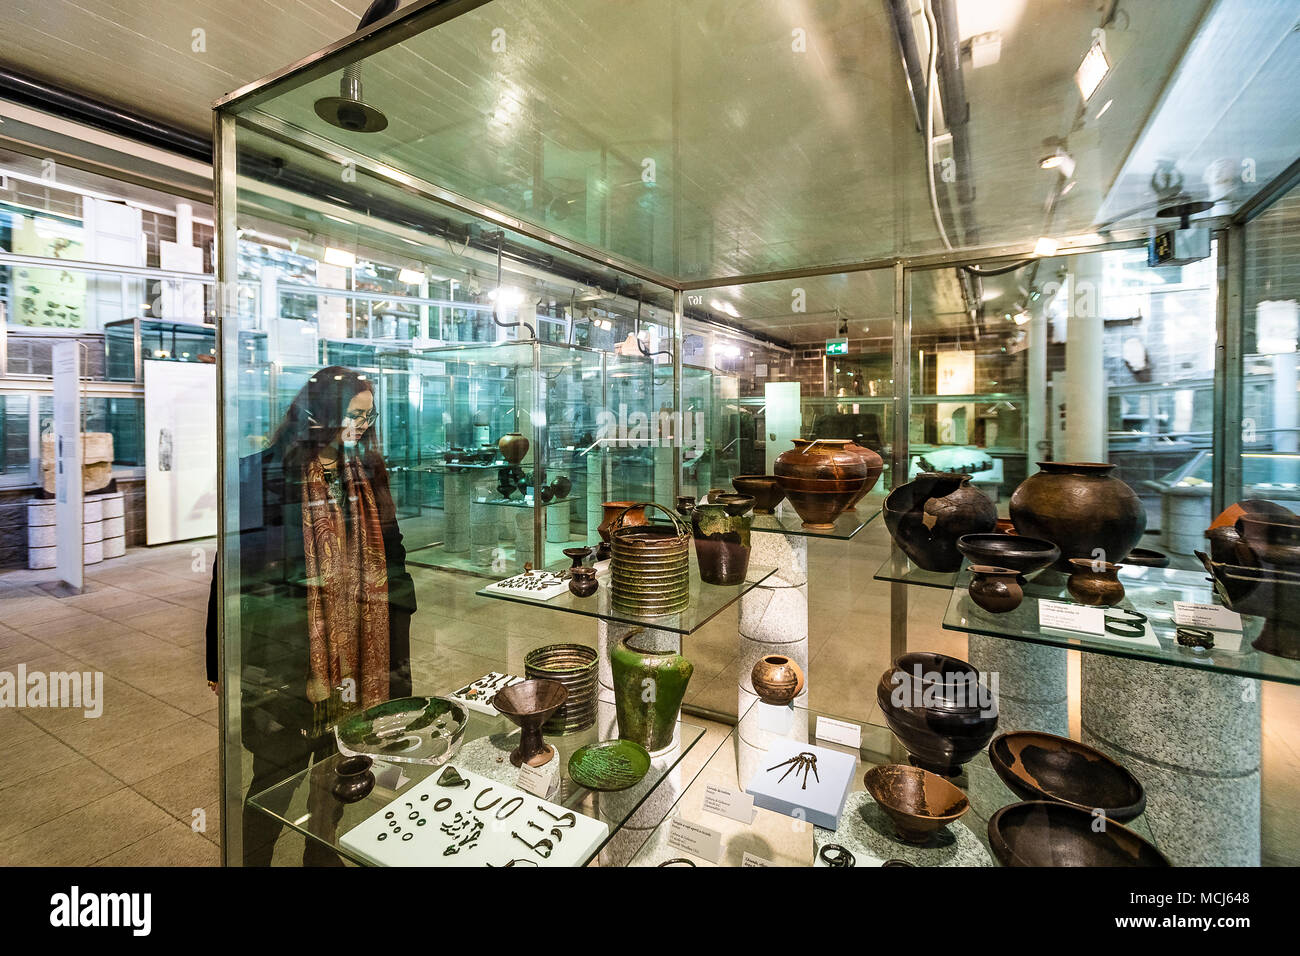 Italy Piedmont Turin Polo Reale museum of antiquity - Stock Image